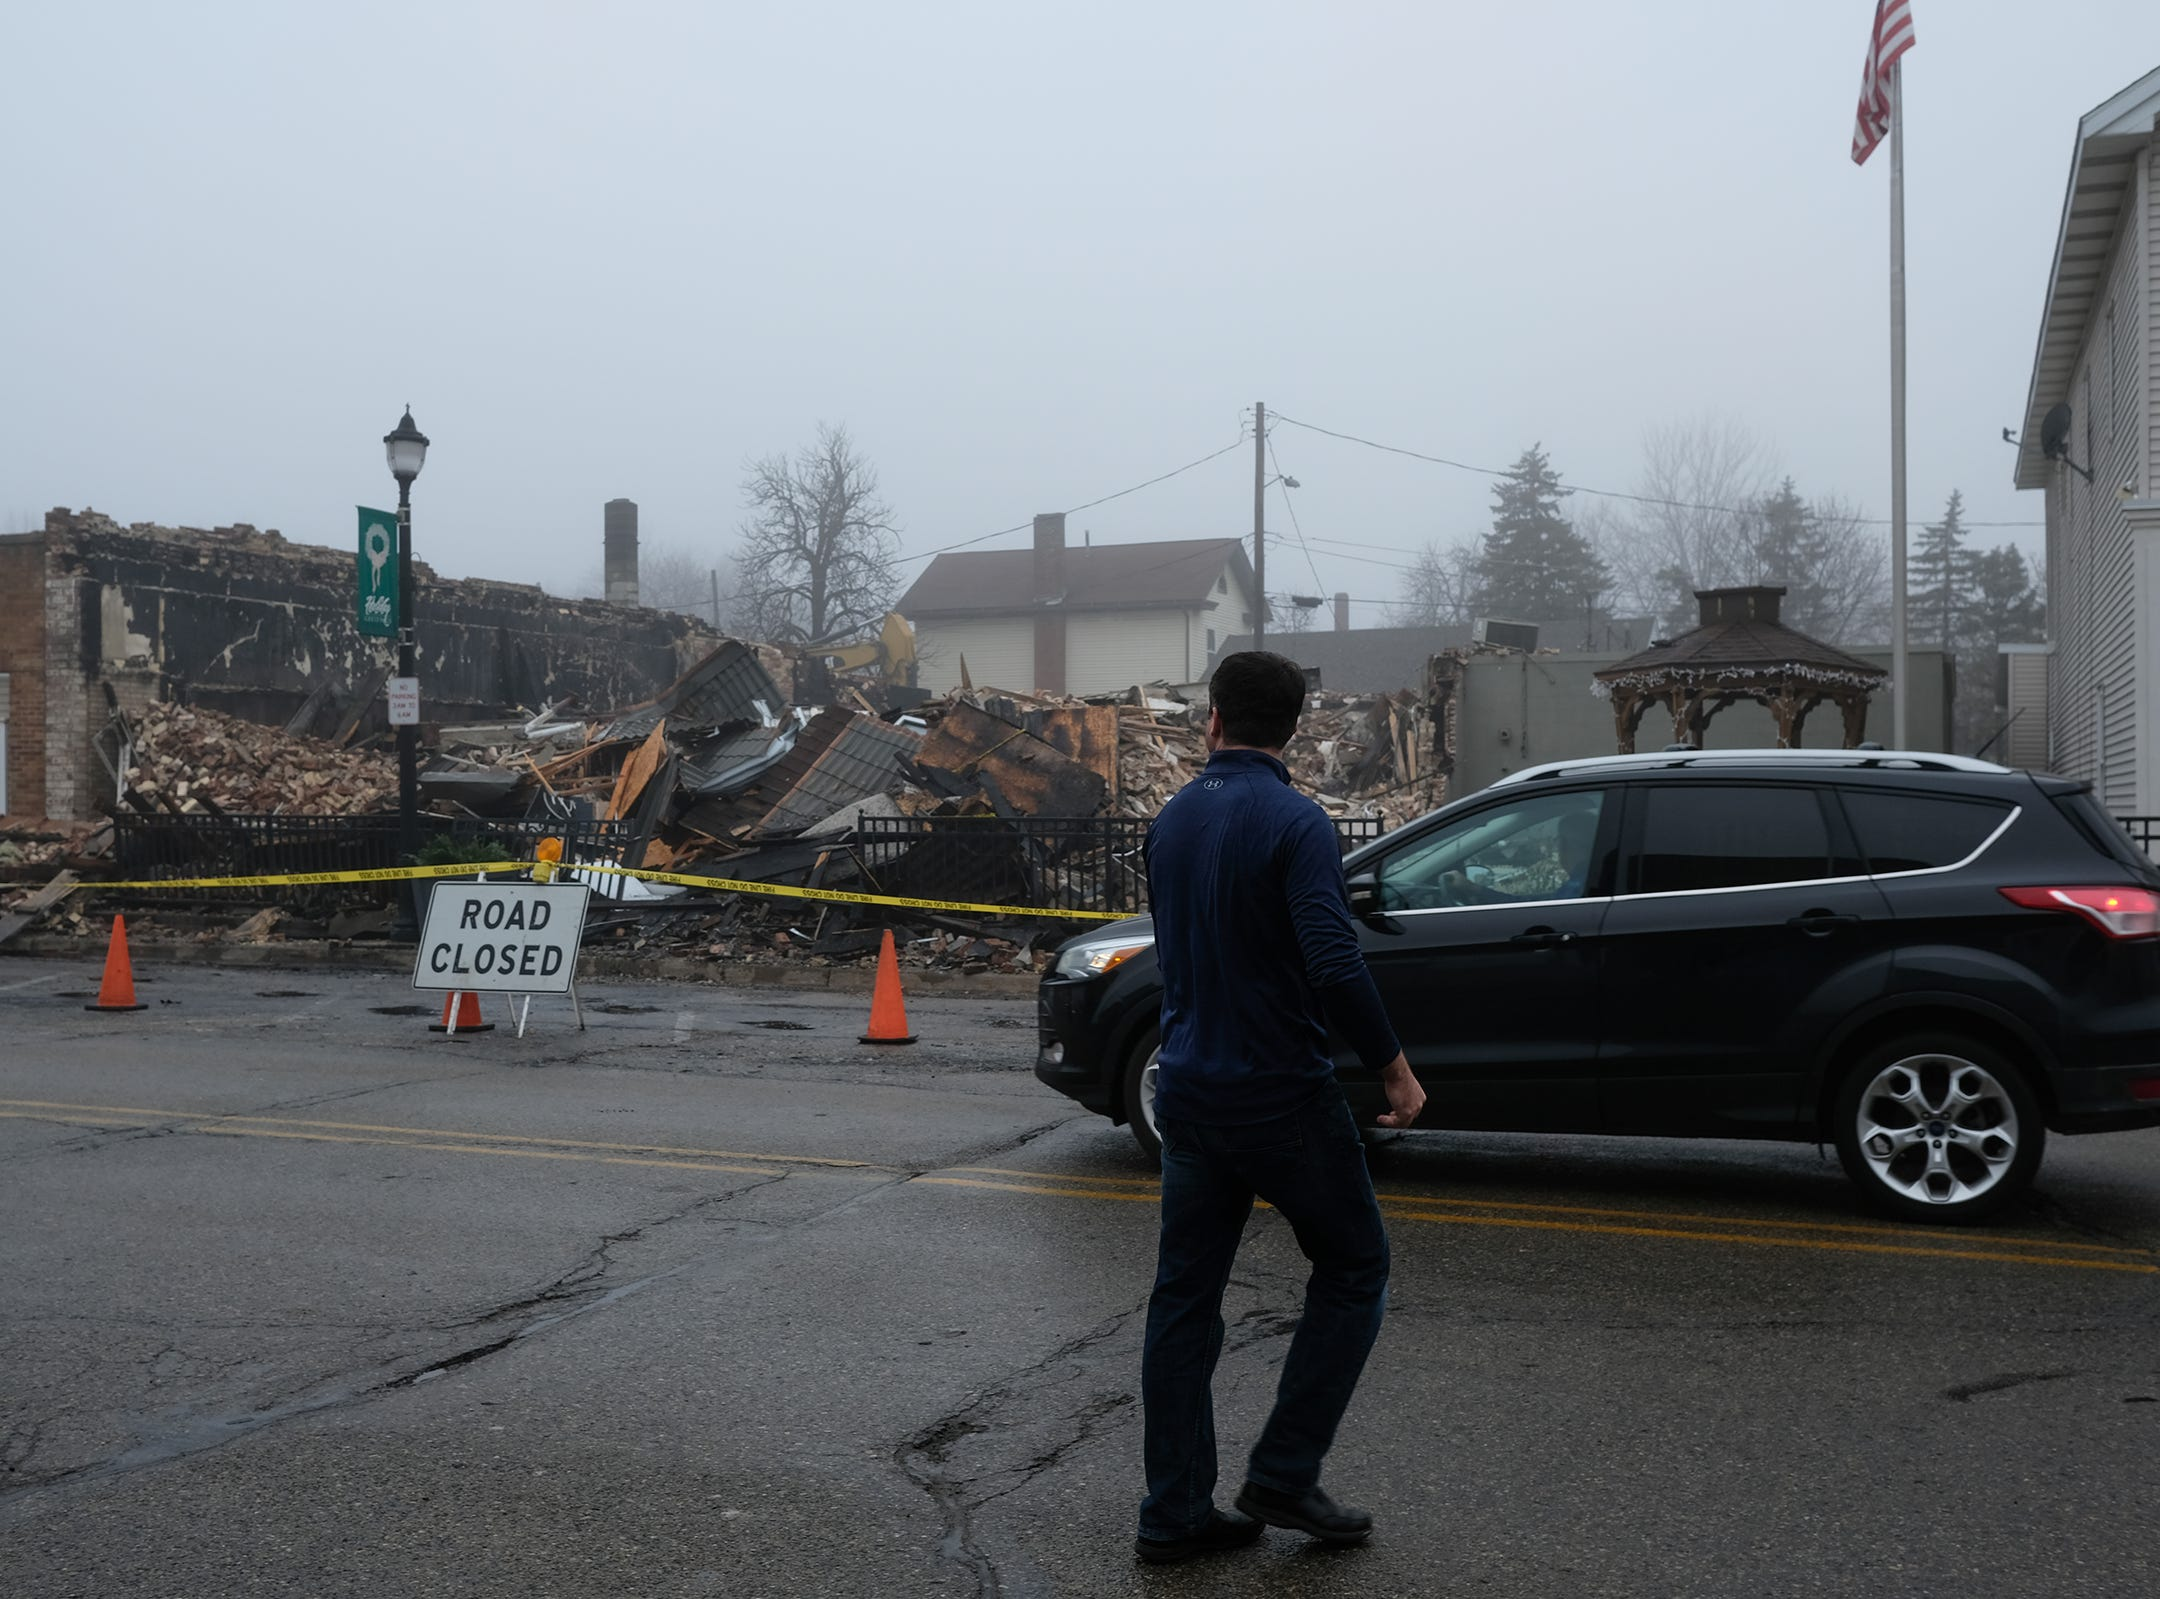 Motorists and pedestrians look at the destruction caused by a fire in downtown Fowler on Saturday. Photo: Sunday, Dec. 16, 2018.